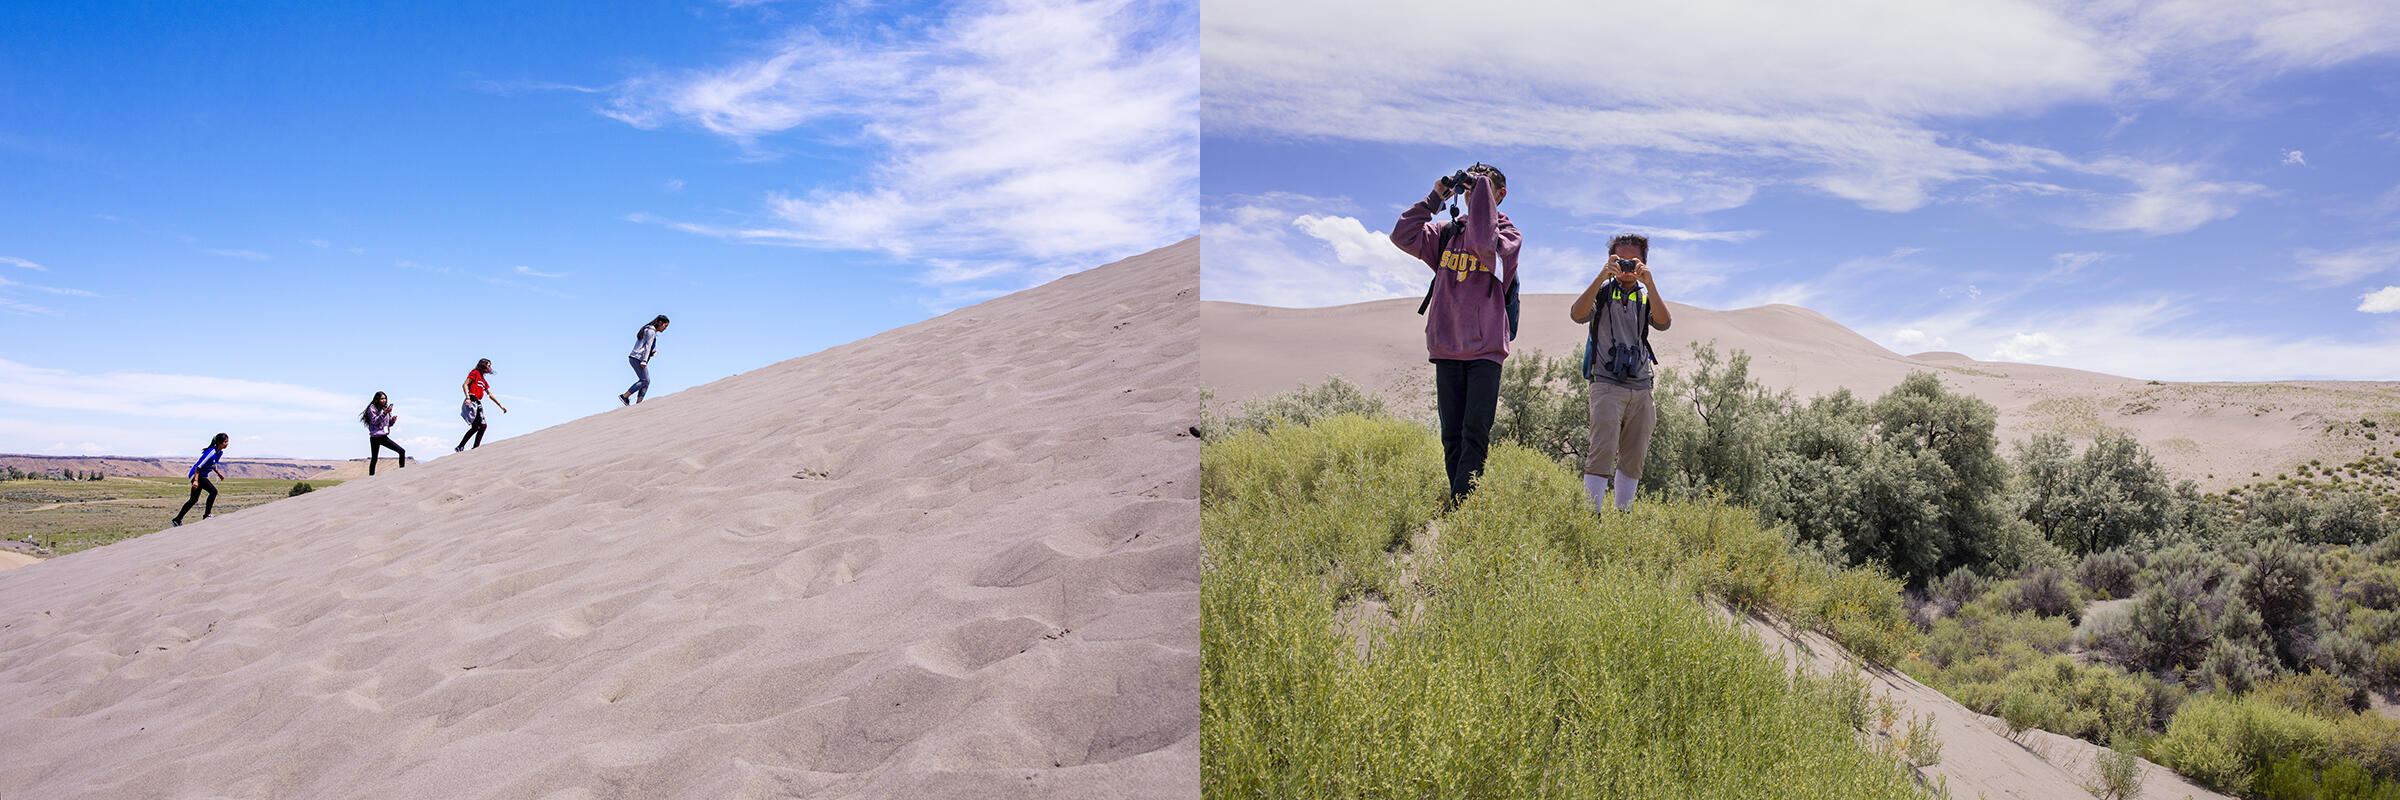 Campers visit Bruneau Dunes State Park and tackle the tallest single sand dune in North America on the first day of the 2018 New Roots program. Photos: Mike Fernandez/Audubon